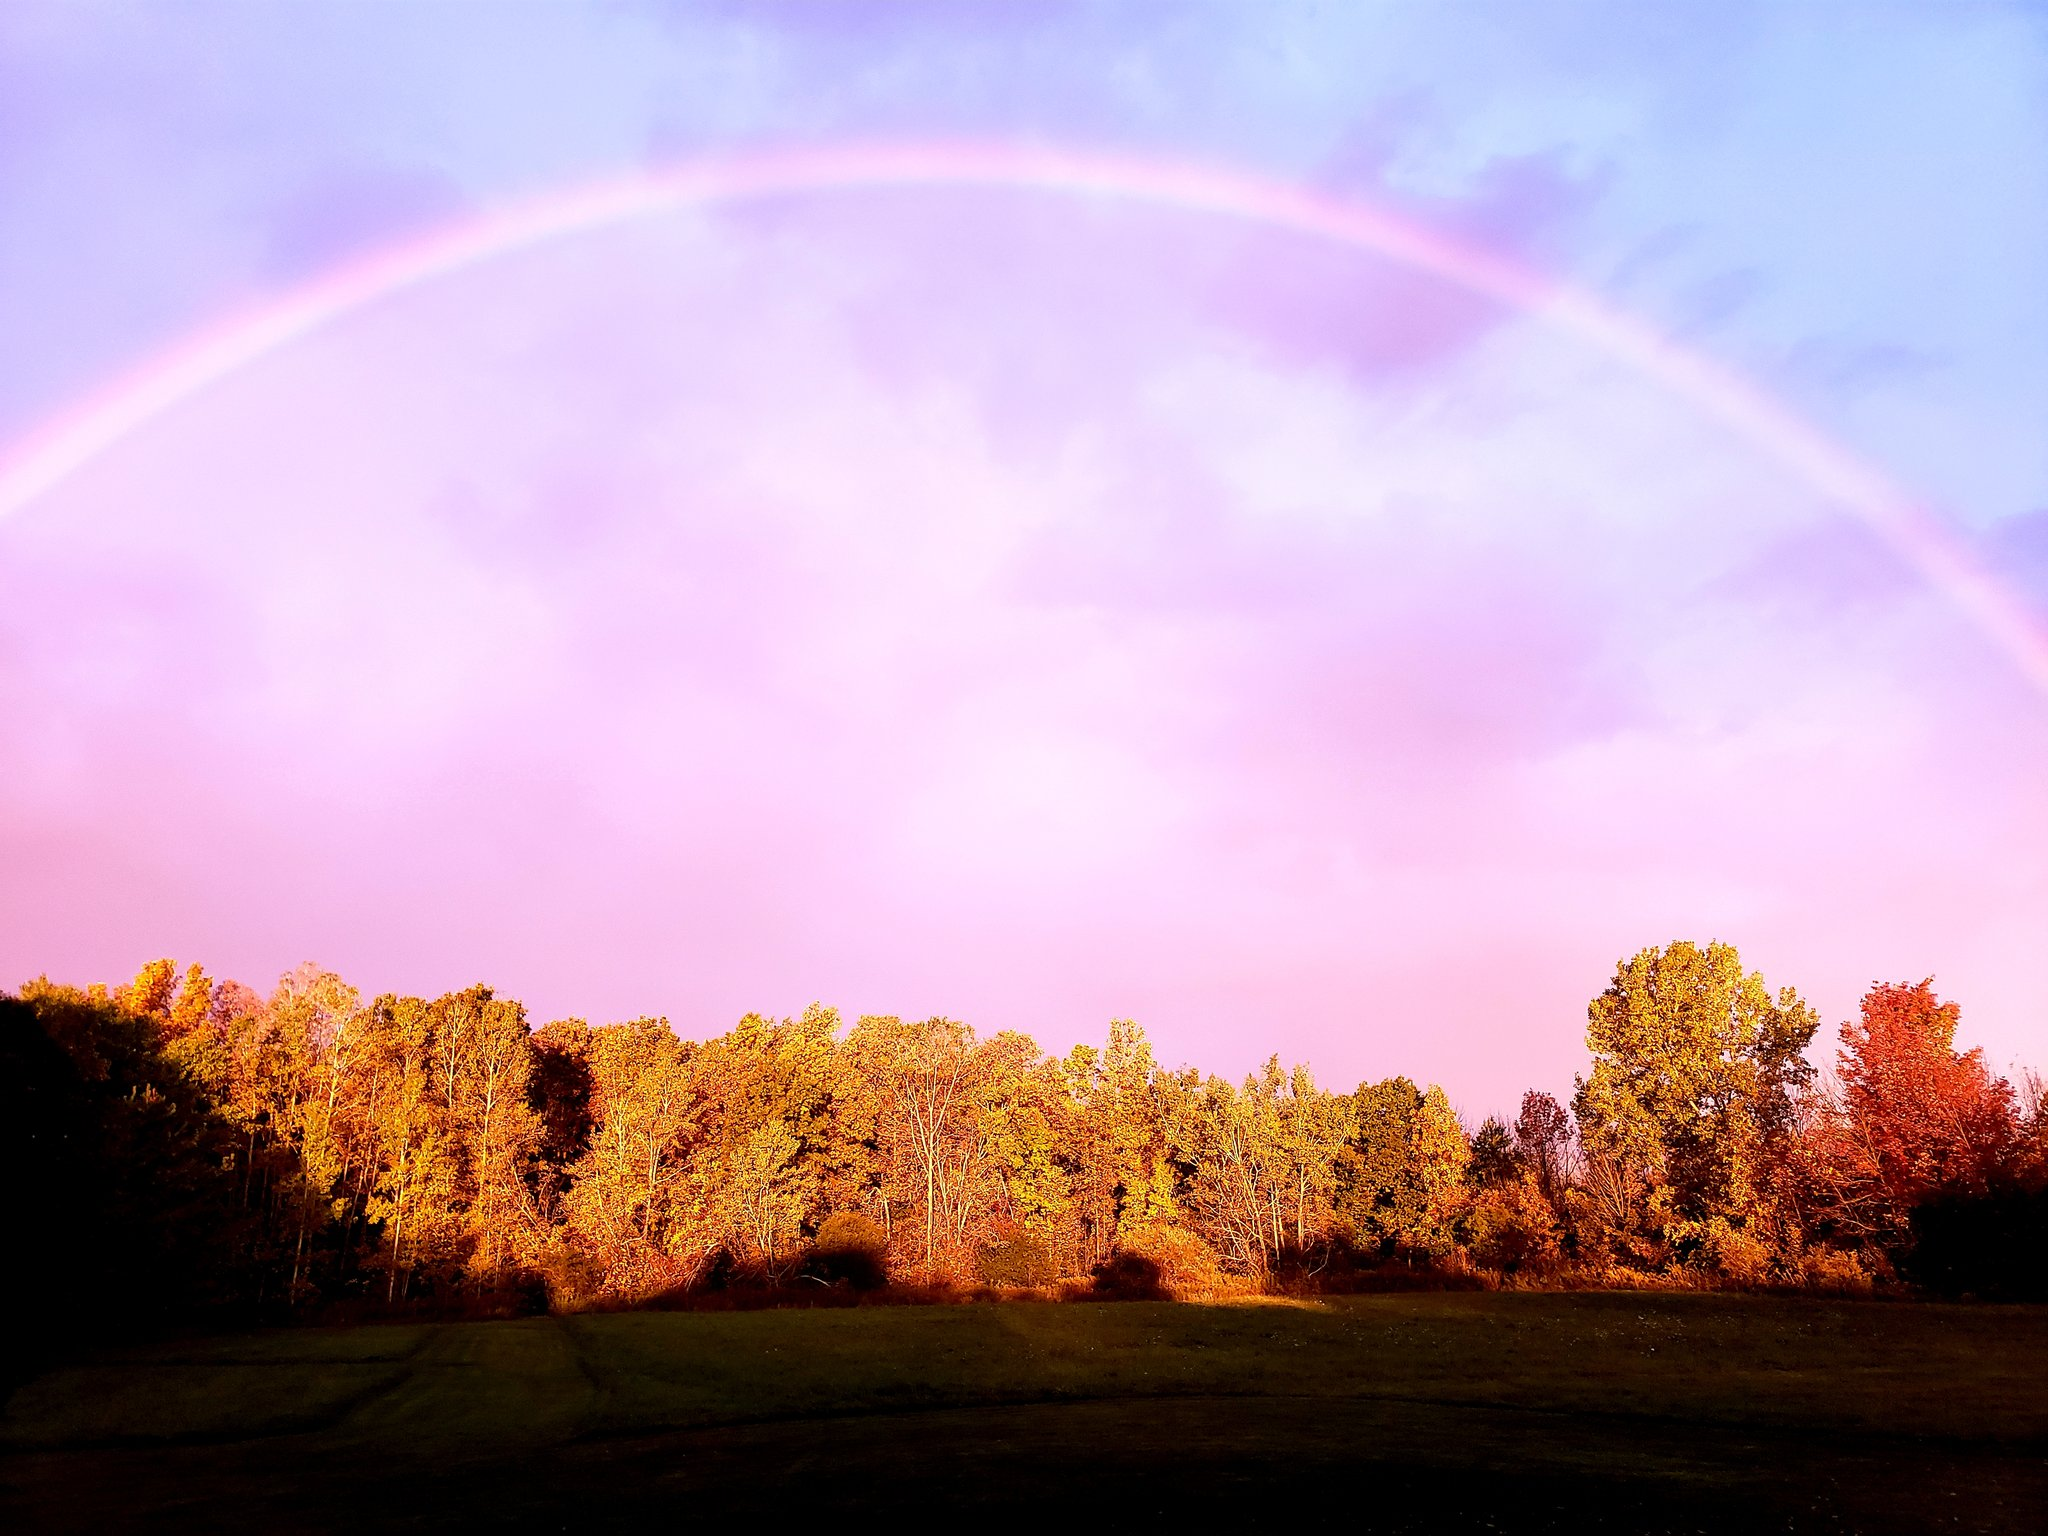 Rainbow in the sky (photo)